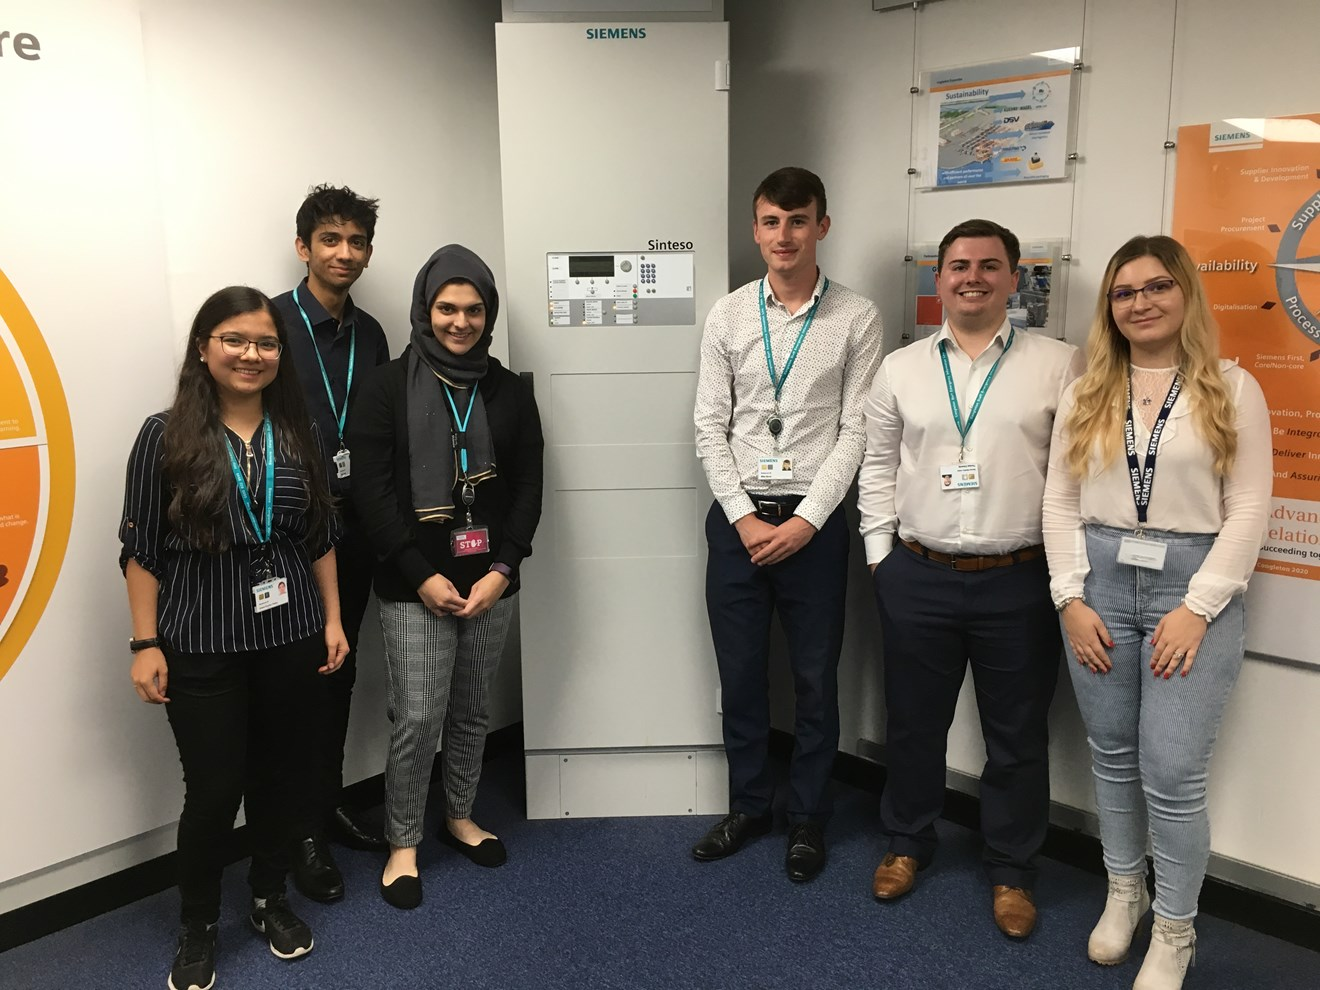 Siemens students Industry 4.0 programme